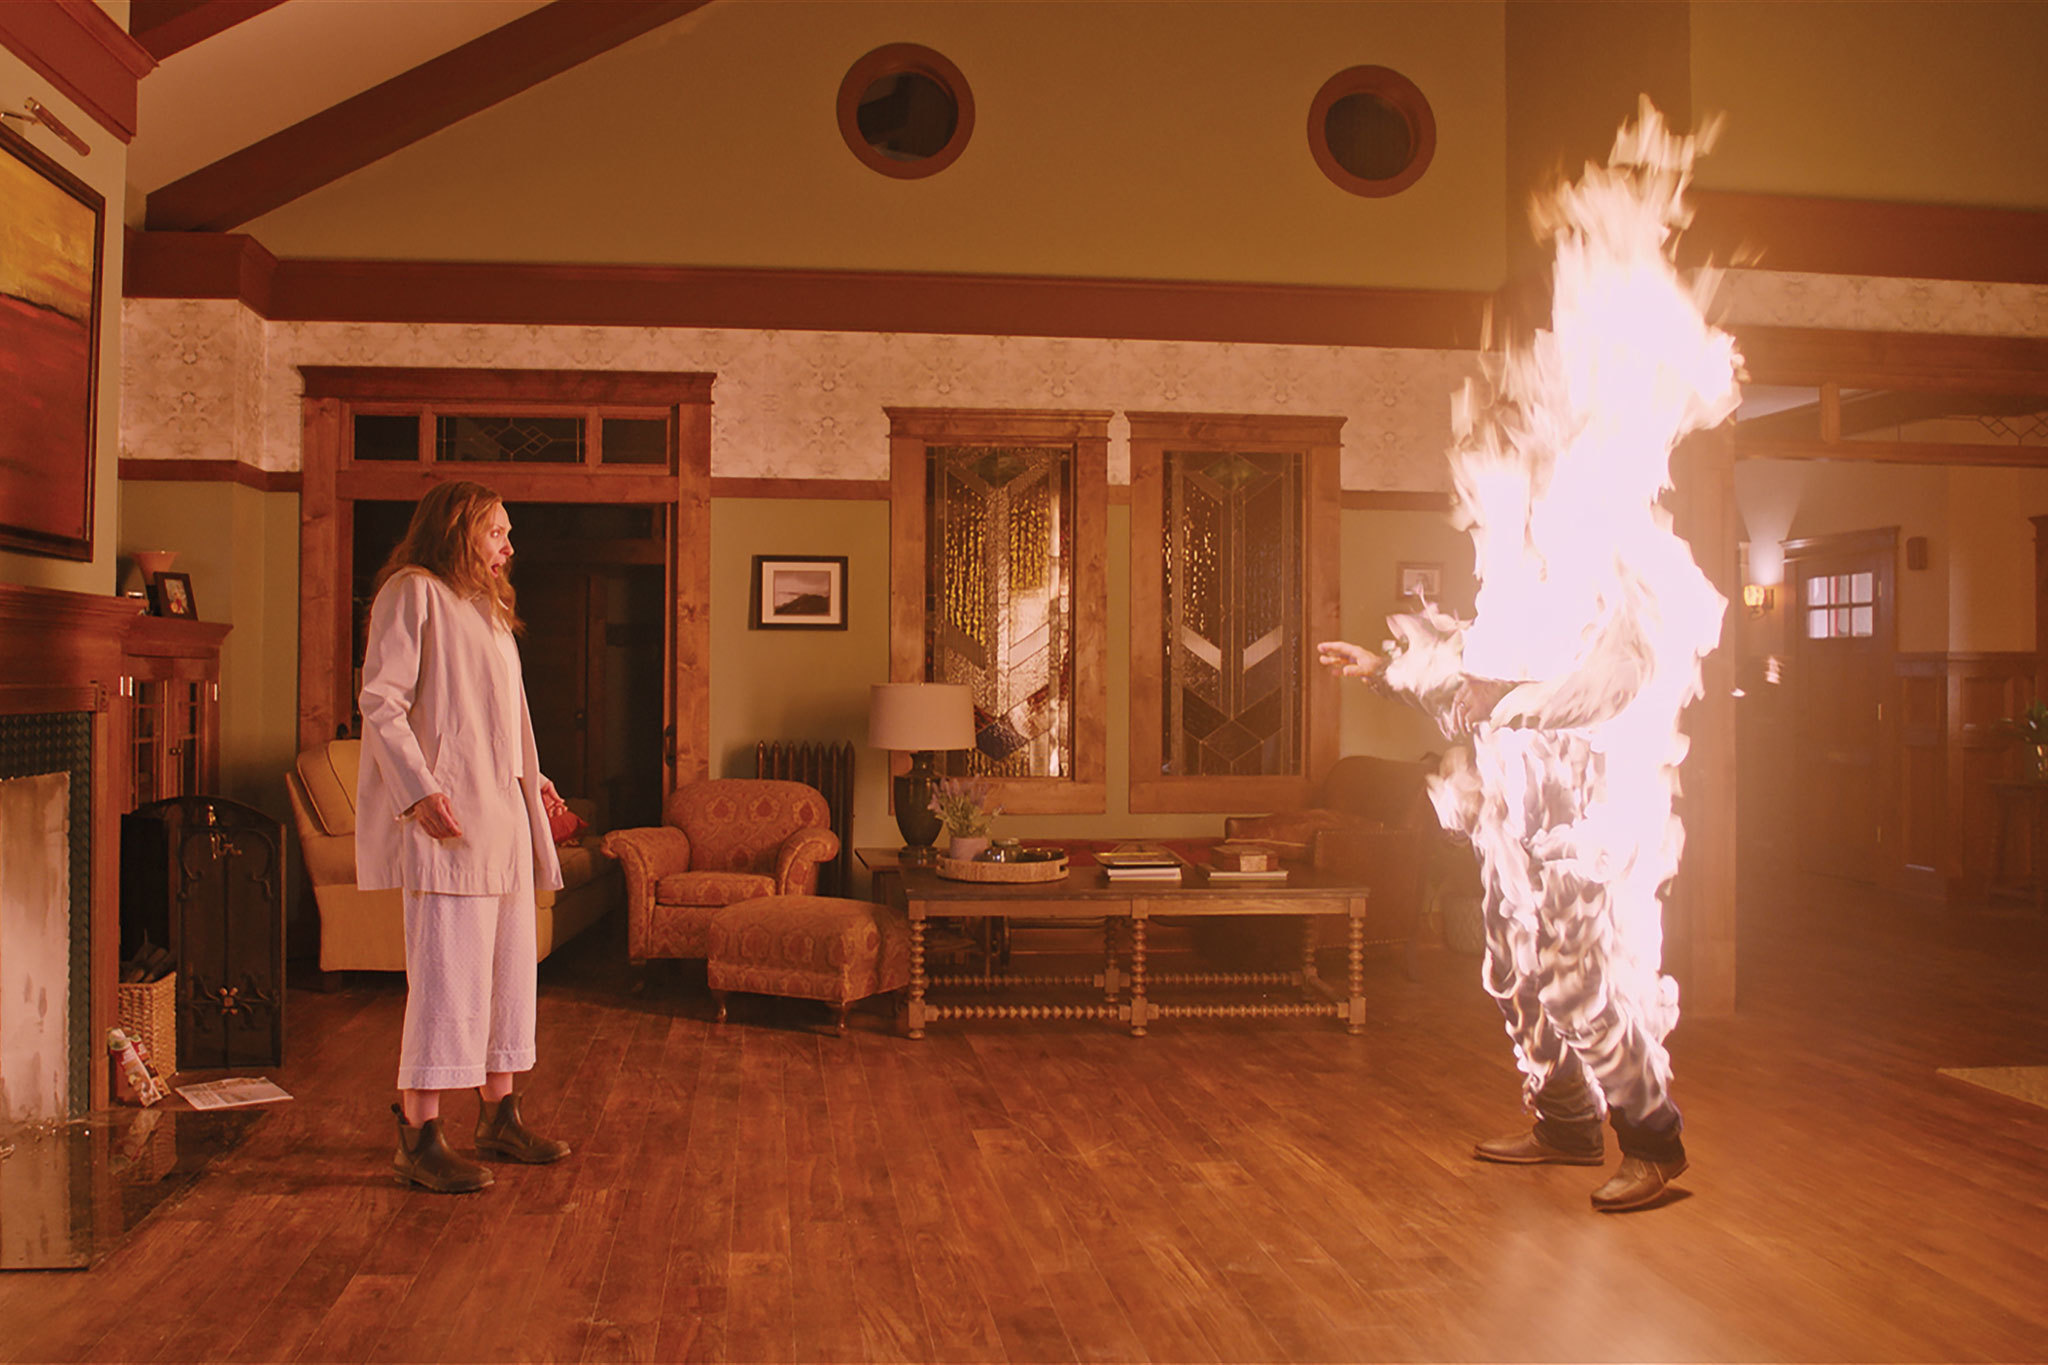 'Hereditary' star Toni Collette and director Ari Aster on their terrifying new horror film